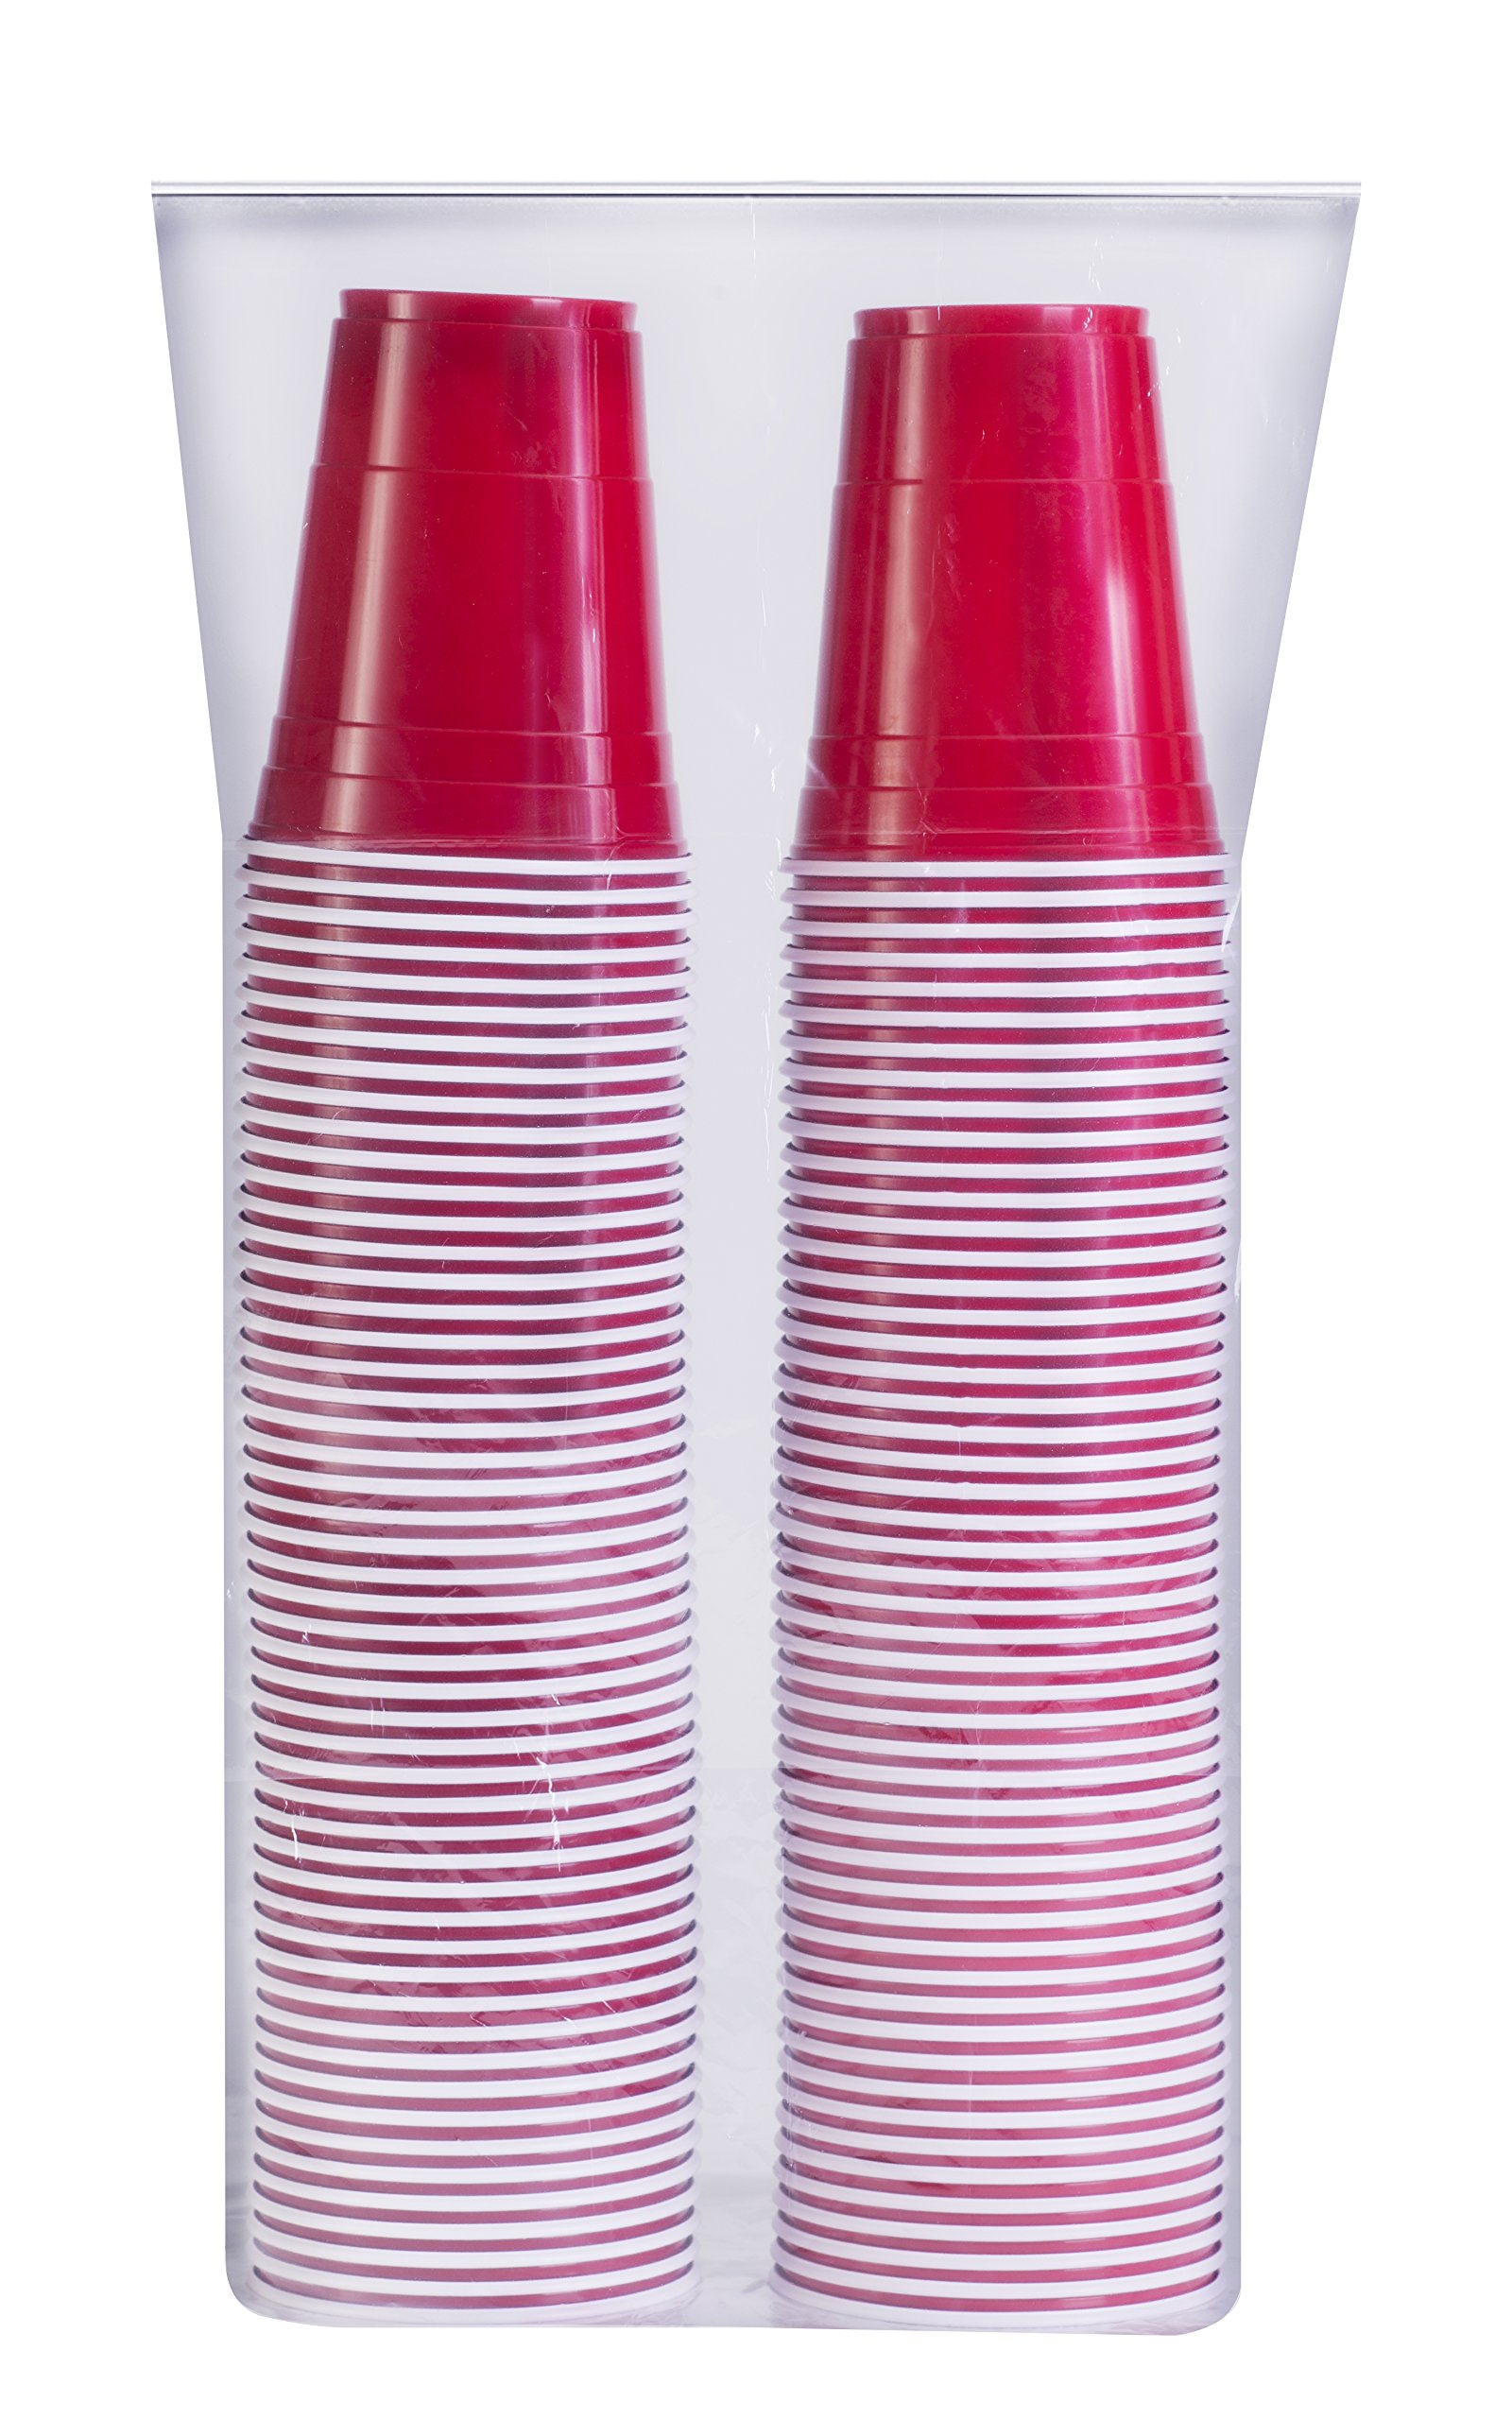 Red Solo Cup Cold Plastic Party Cups 16 Ounce 100 Pack by SOLO Cup Company